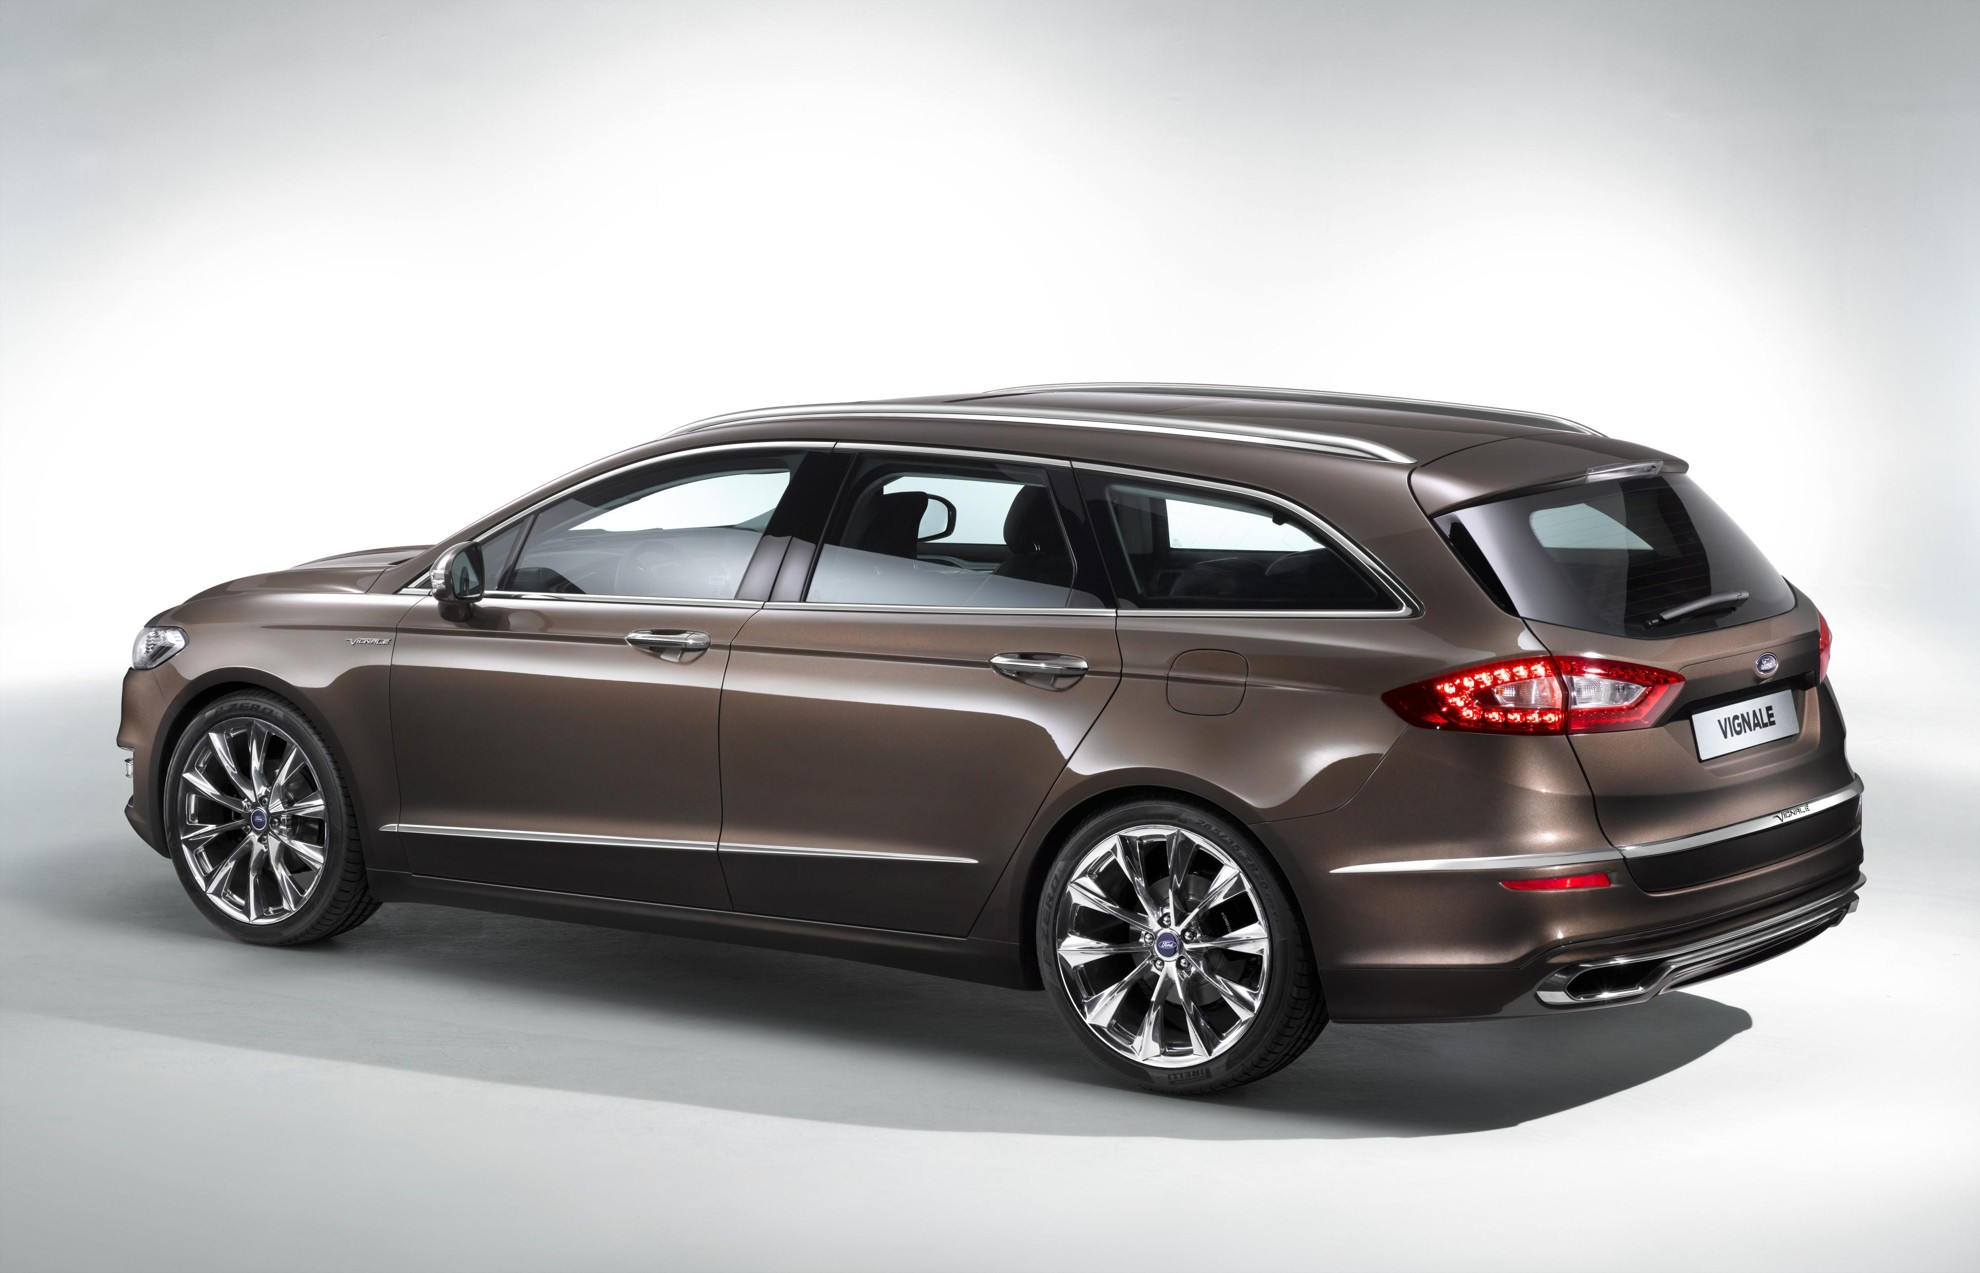 Ford Vignale 2013